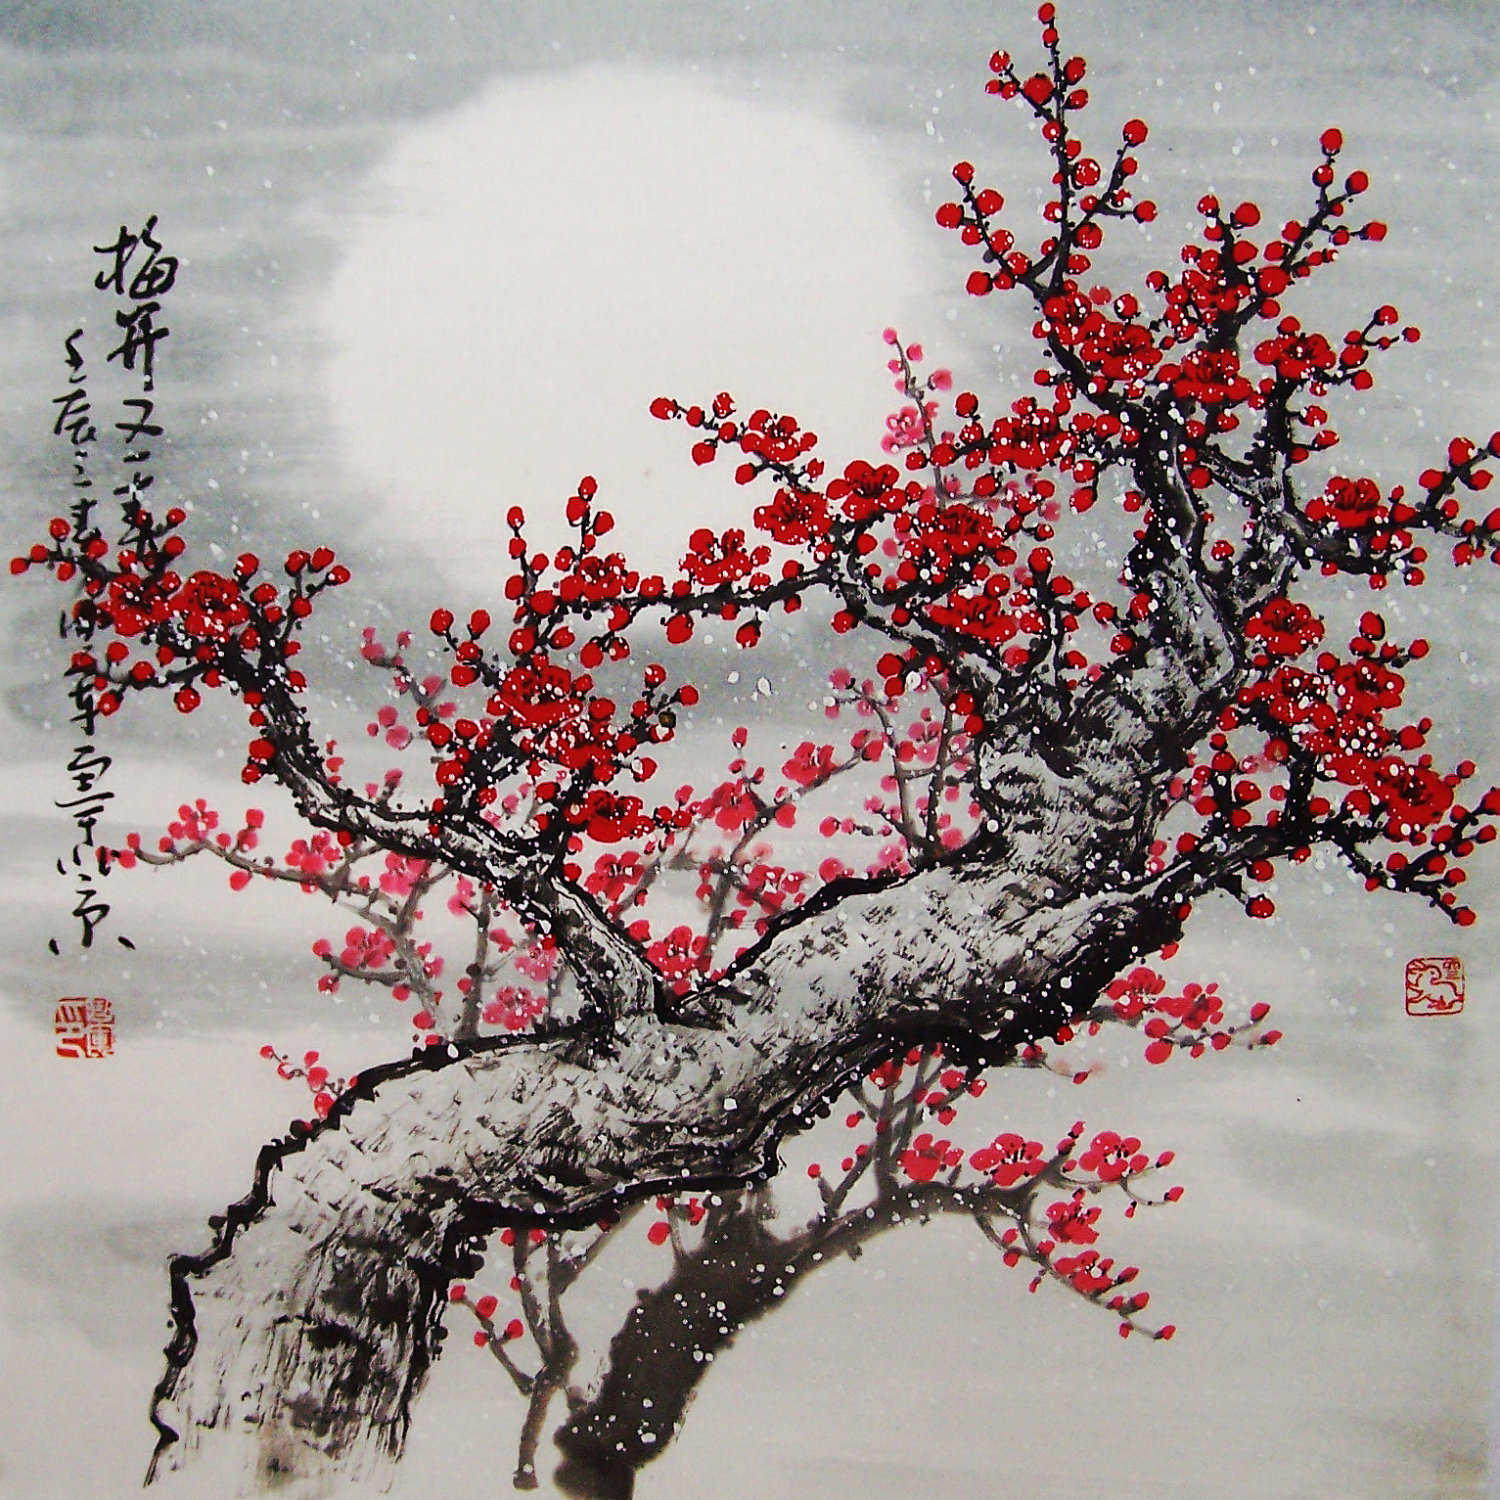 chinese cherry blossoms Art - ID: 60886